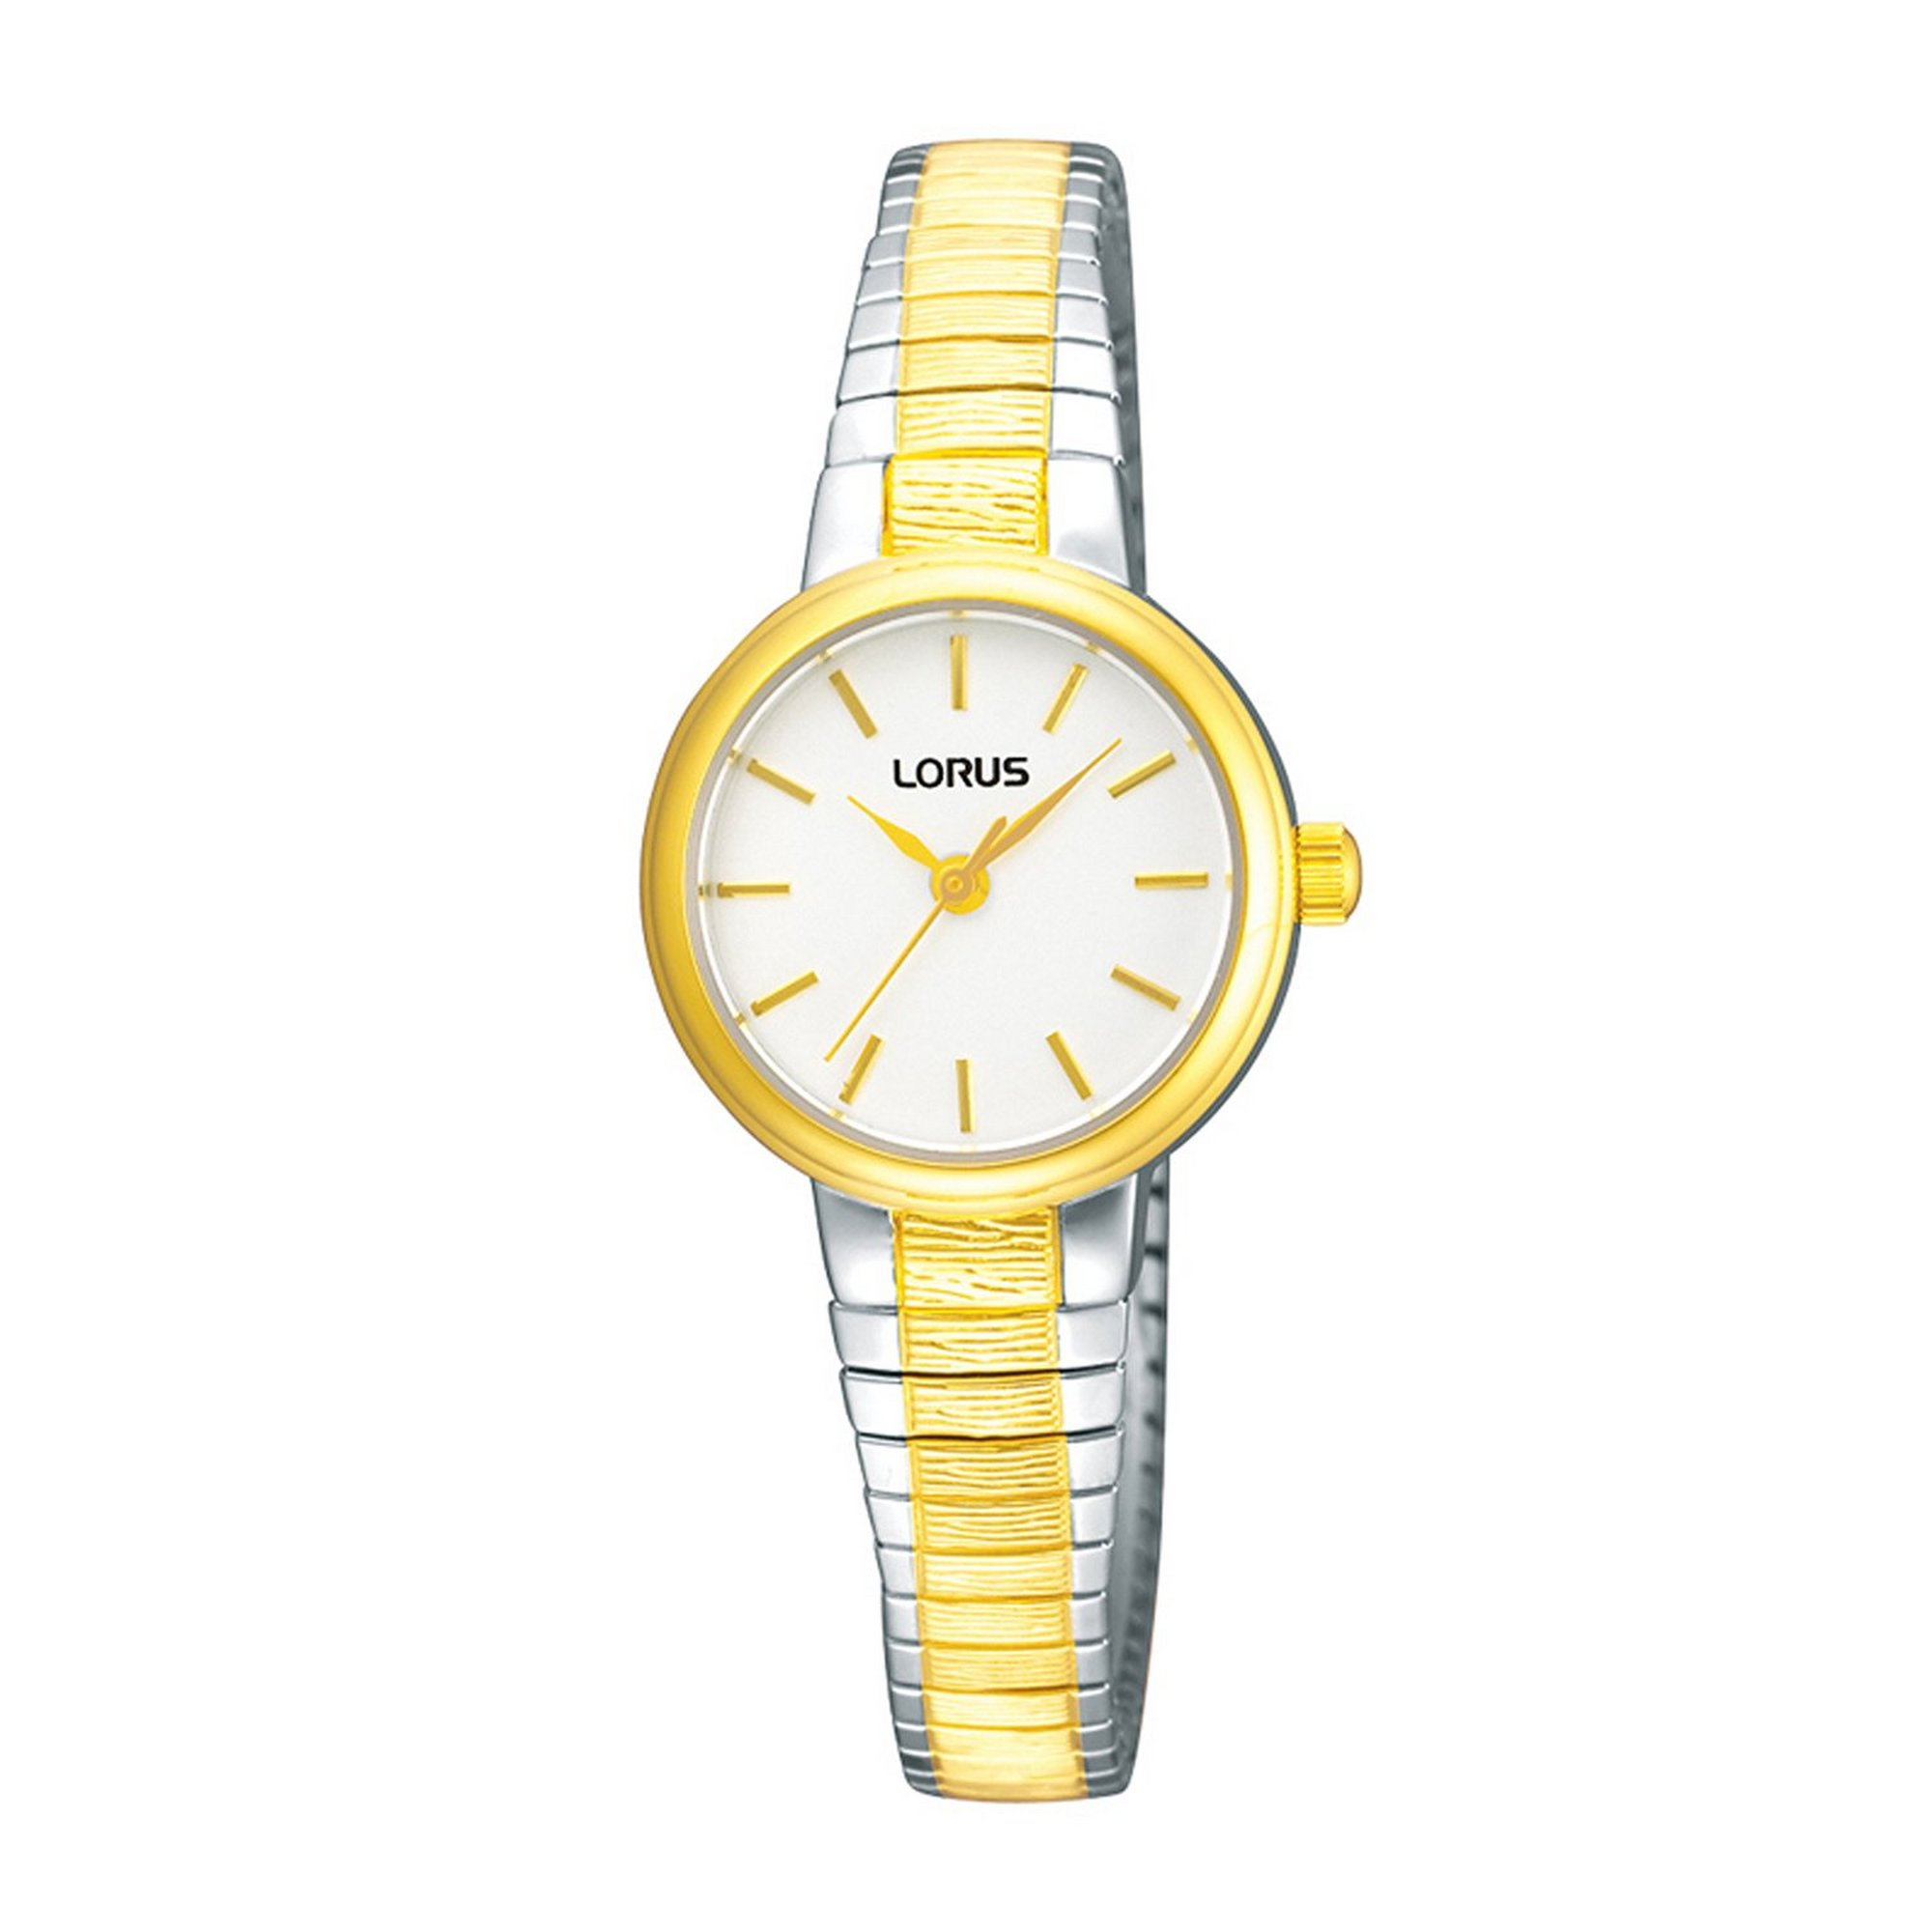 Image of Lorus Gold Plated Two Tone Expanding Bracelet Watch with Circular Face